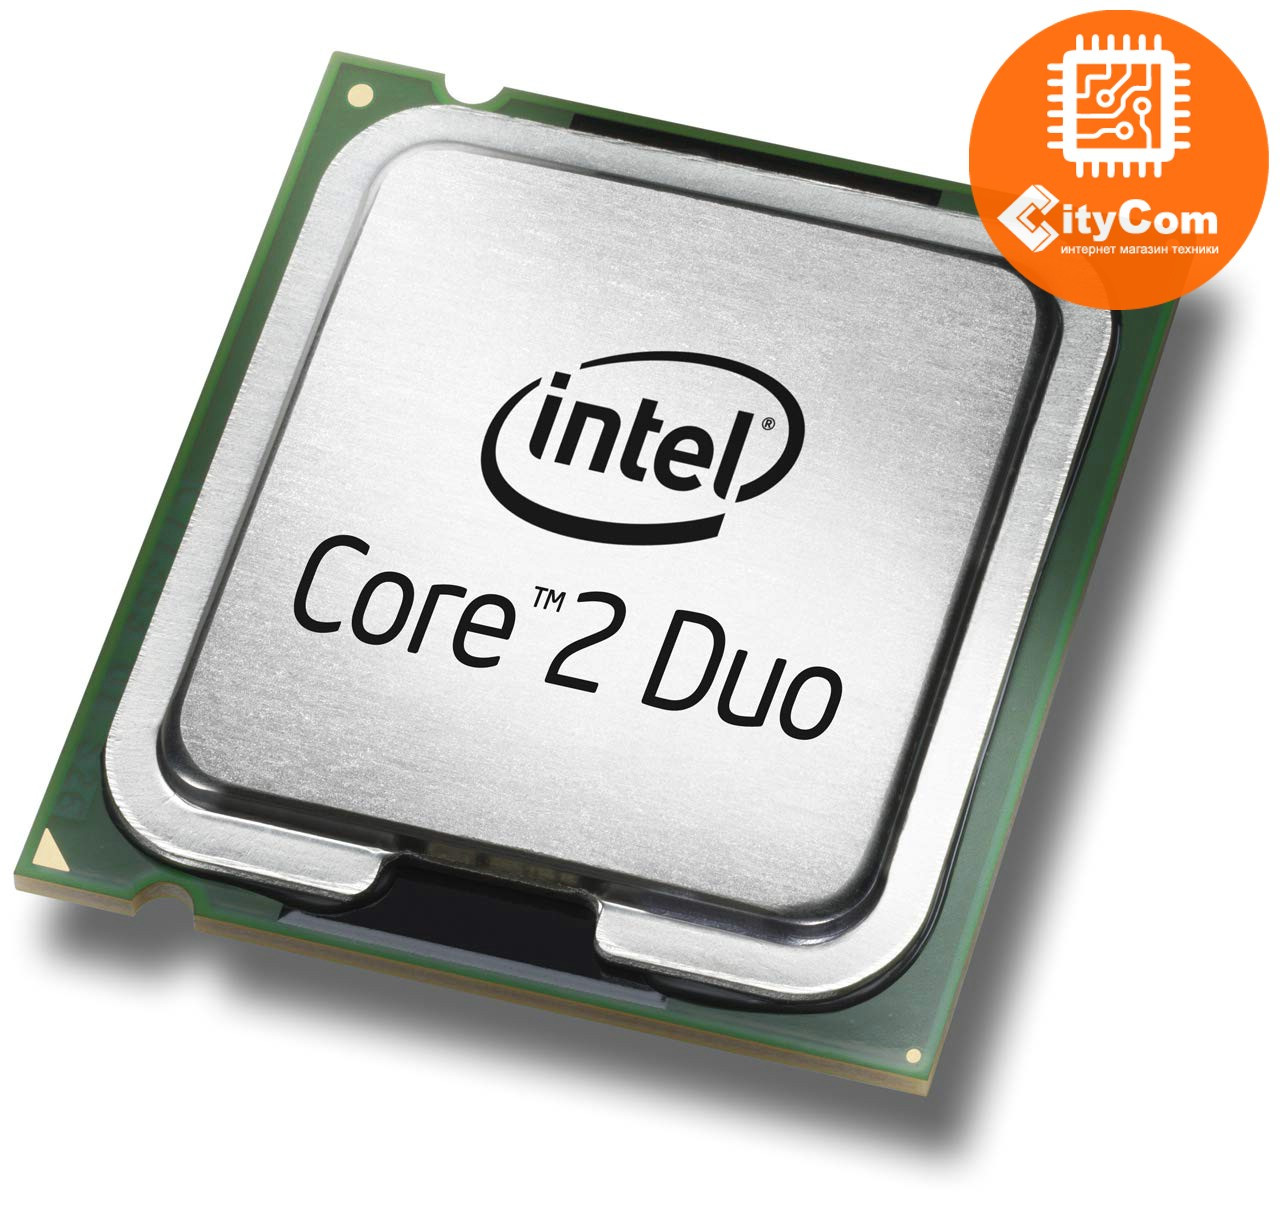 CPU S-775 Intel Core2Duo E4300 1.8 GHz (2MB, 800 MHz, LGA775) oem